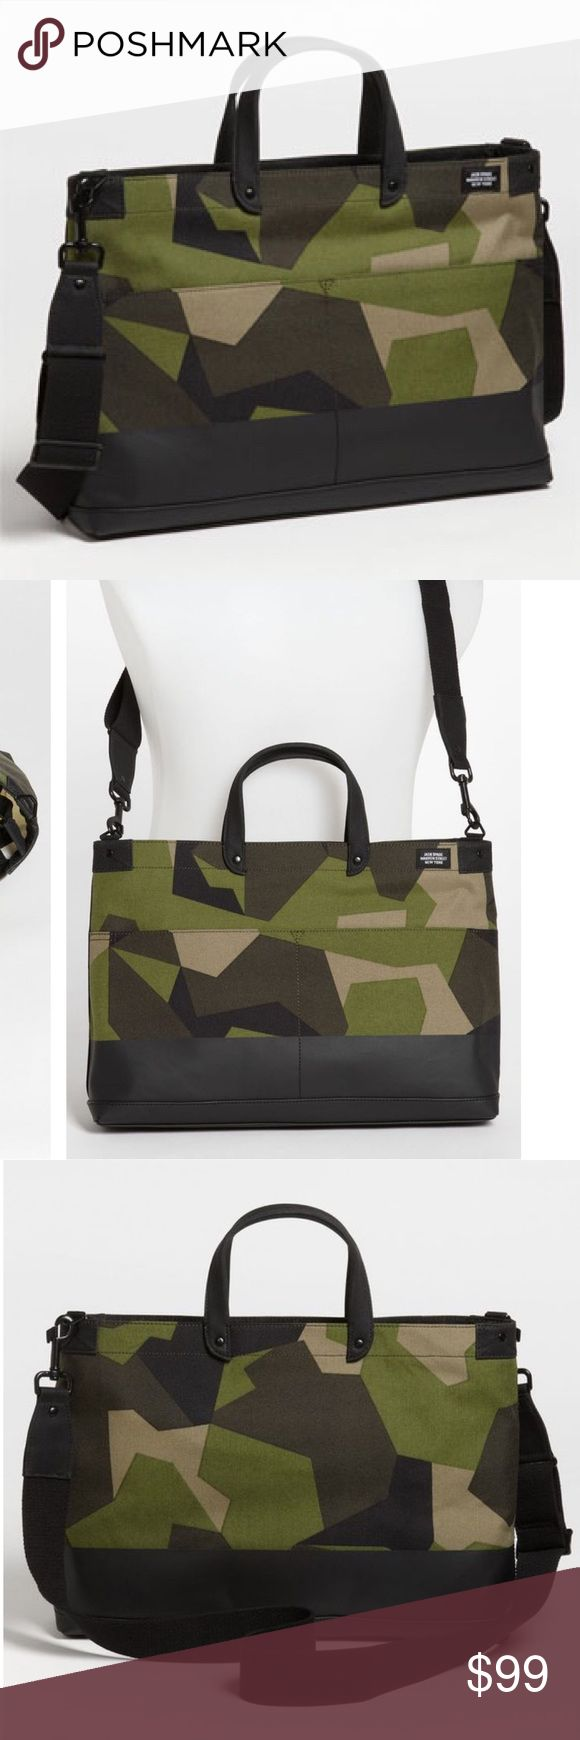 Jack Spade Camo Briefcase Worn once or twice! Originally $200 from Nordstrom. Small defect on bottom corner of the bag when the leather got scraped- not noticeable at all (see last photo) Jack Spade Bags Briefcases